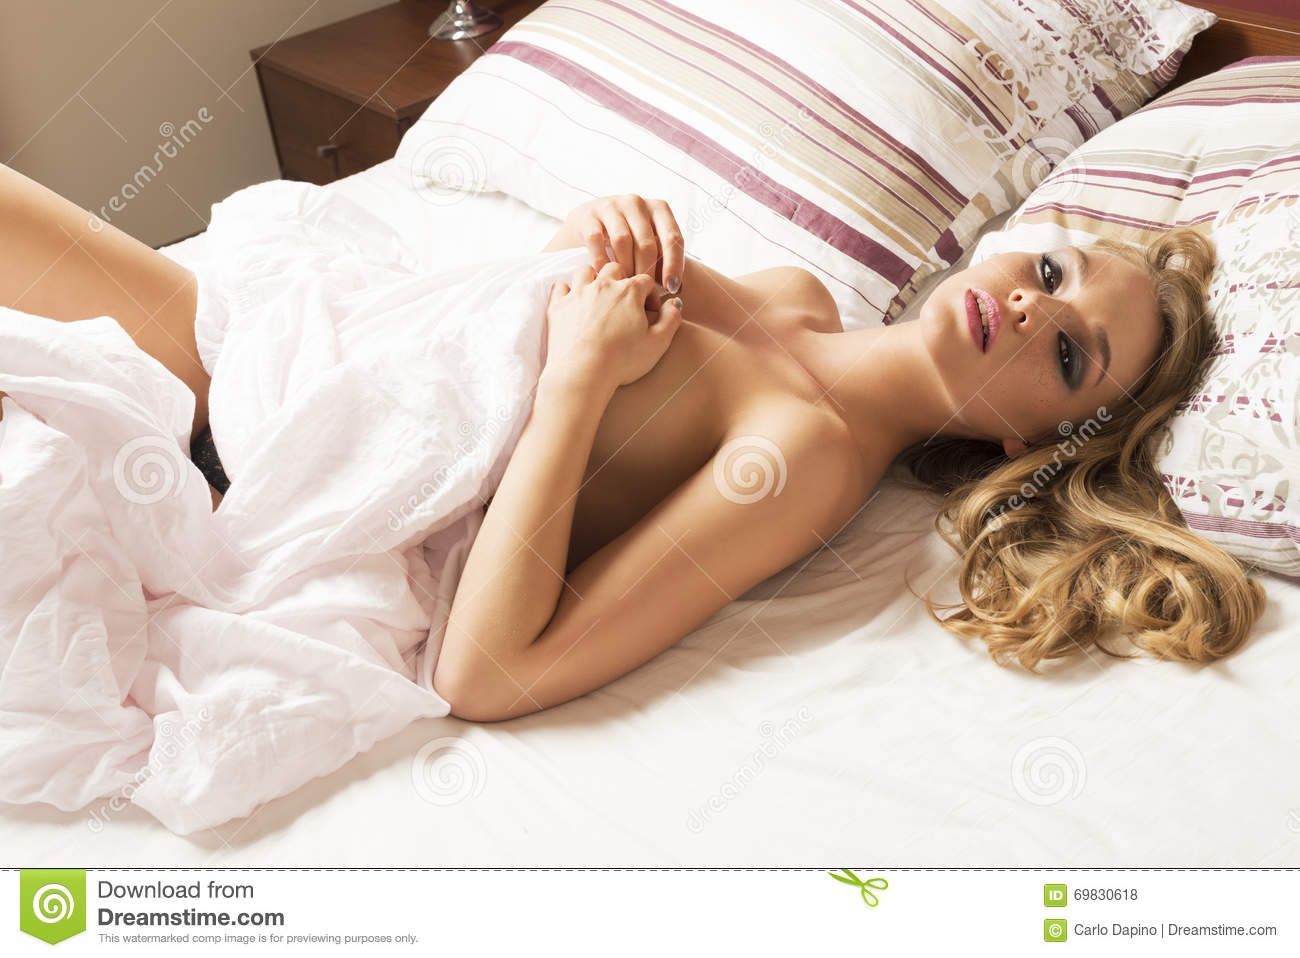 Naked Woman On Bed Stock Photo Image Of Lady, Naked -6103